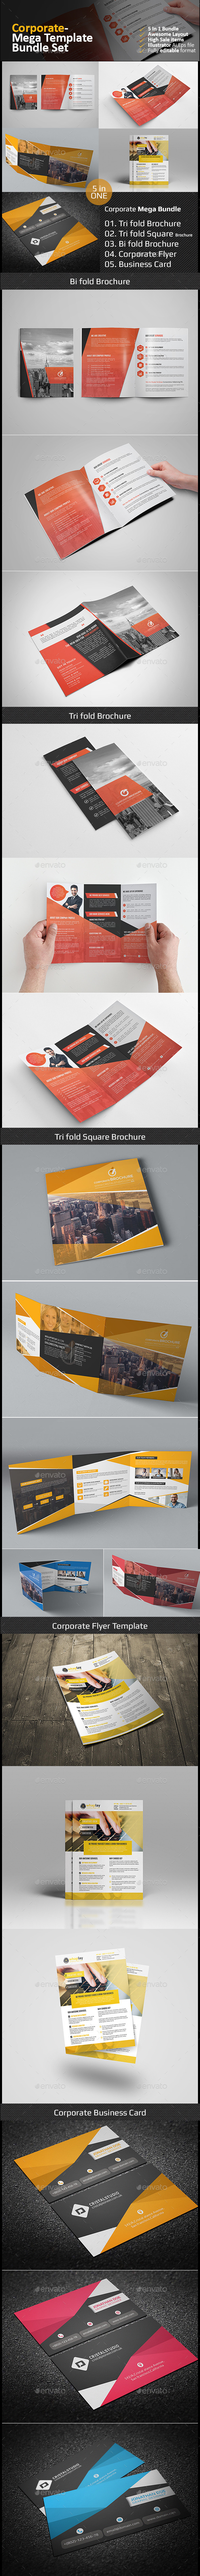 Corporate Mega Bundle-02 - Brochures Print Templates